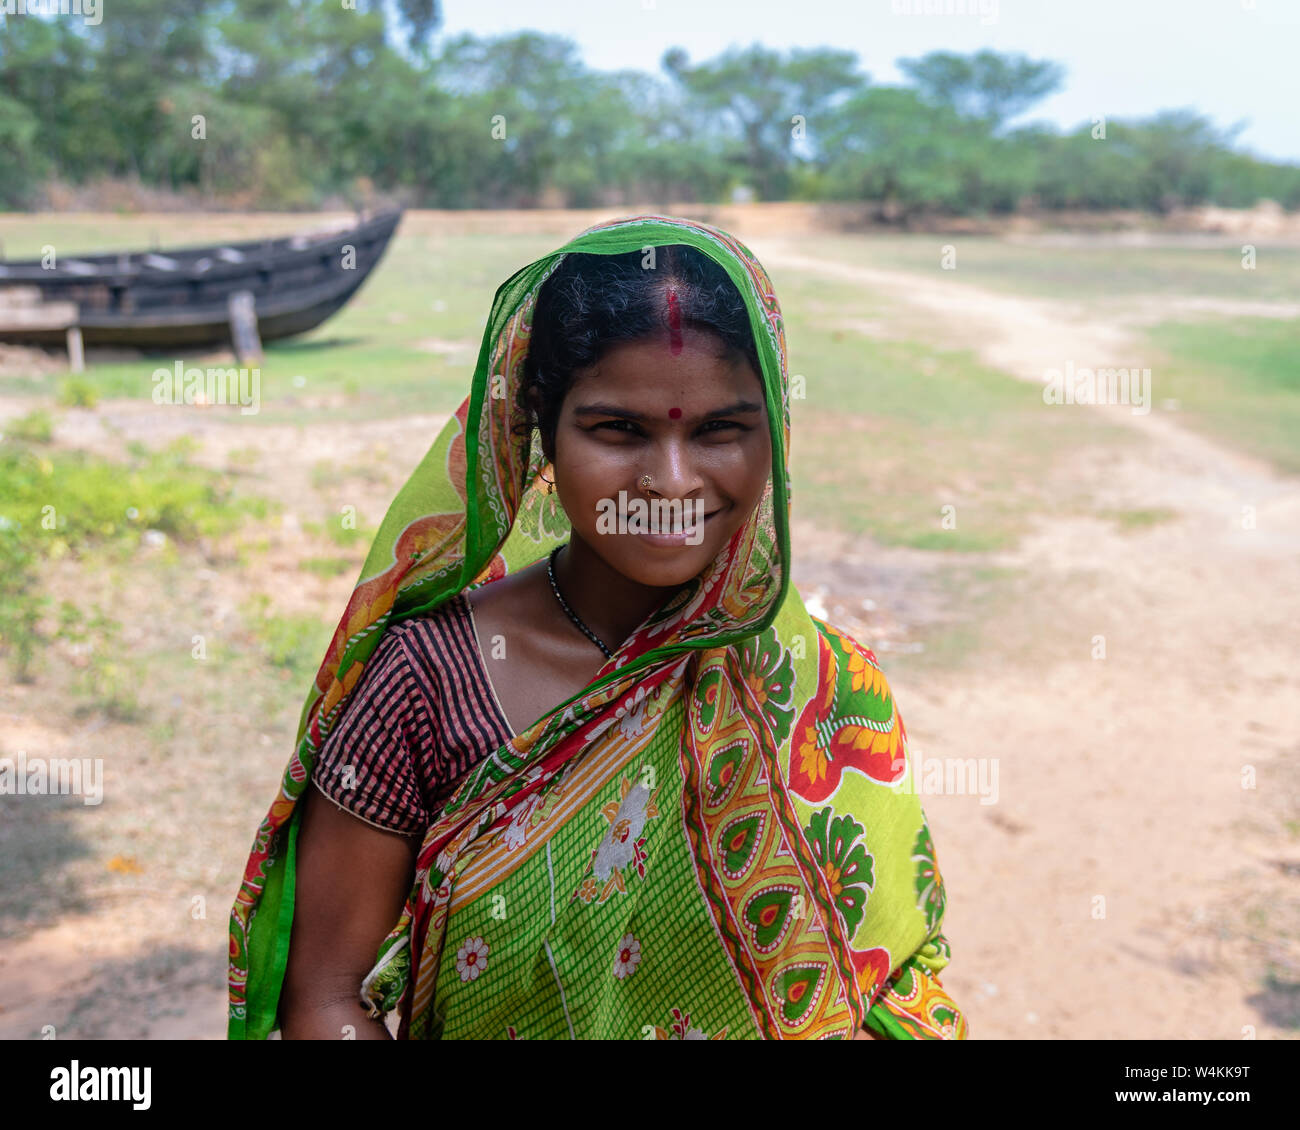 Bichitrapur, Orissa, India. - May31,2019. An unidentified Indian Rural woman smiling in front of the Camera. Stock Photo